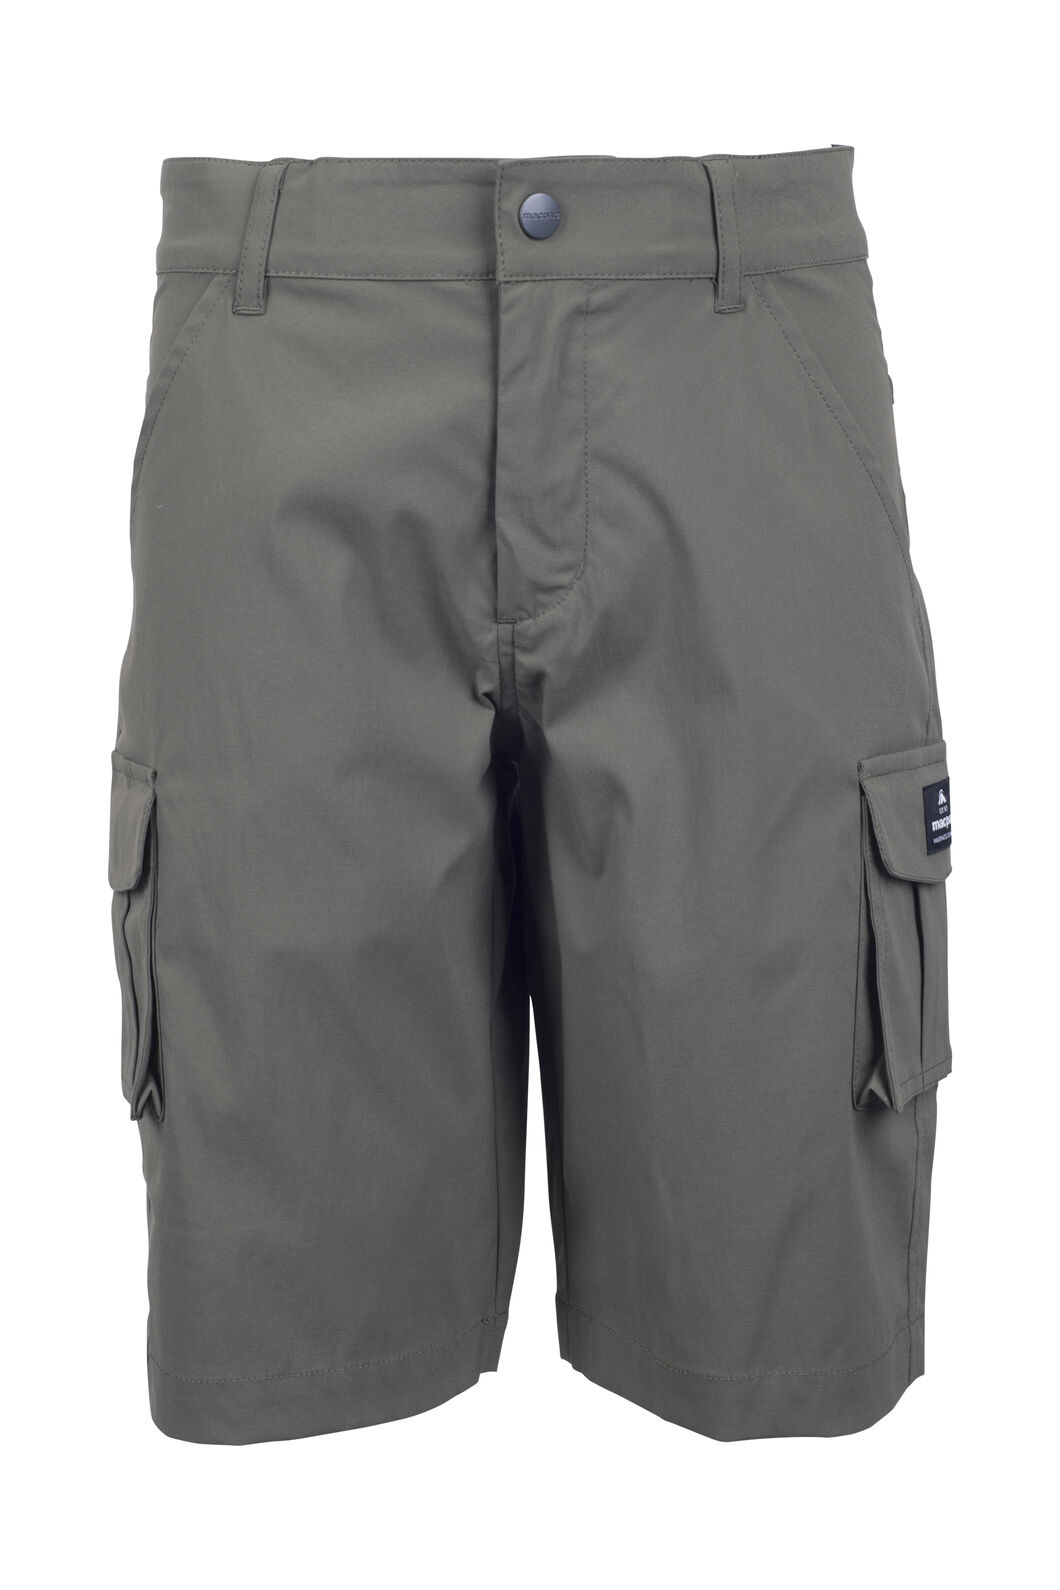 Macpac Lil Drifter Shorts - Kids', Grape Leaf, hi-res